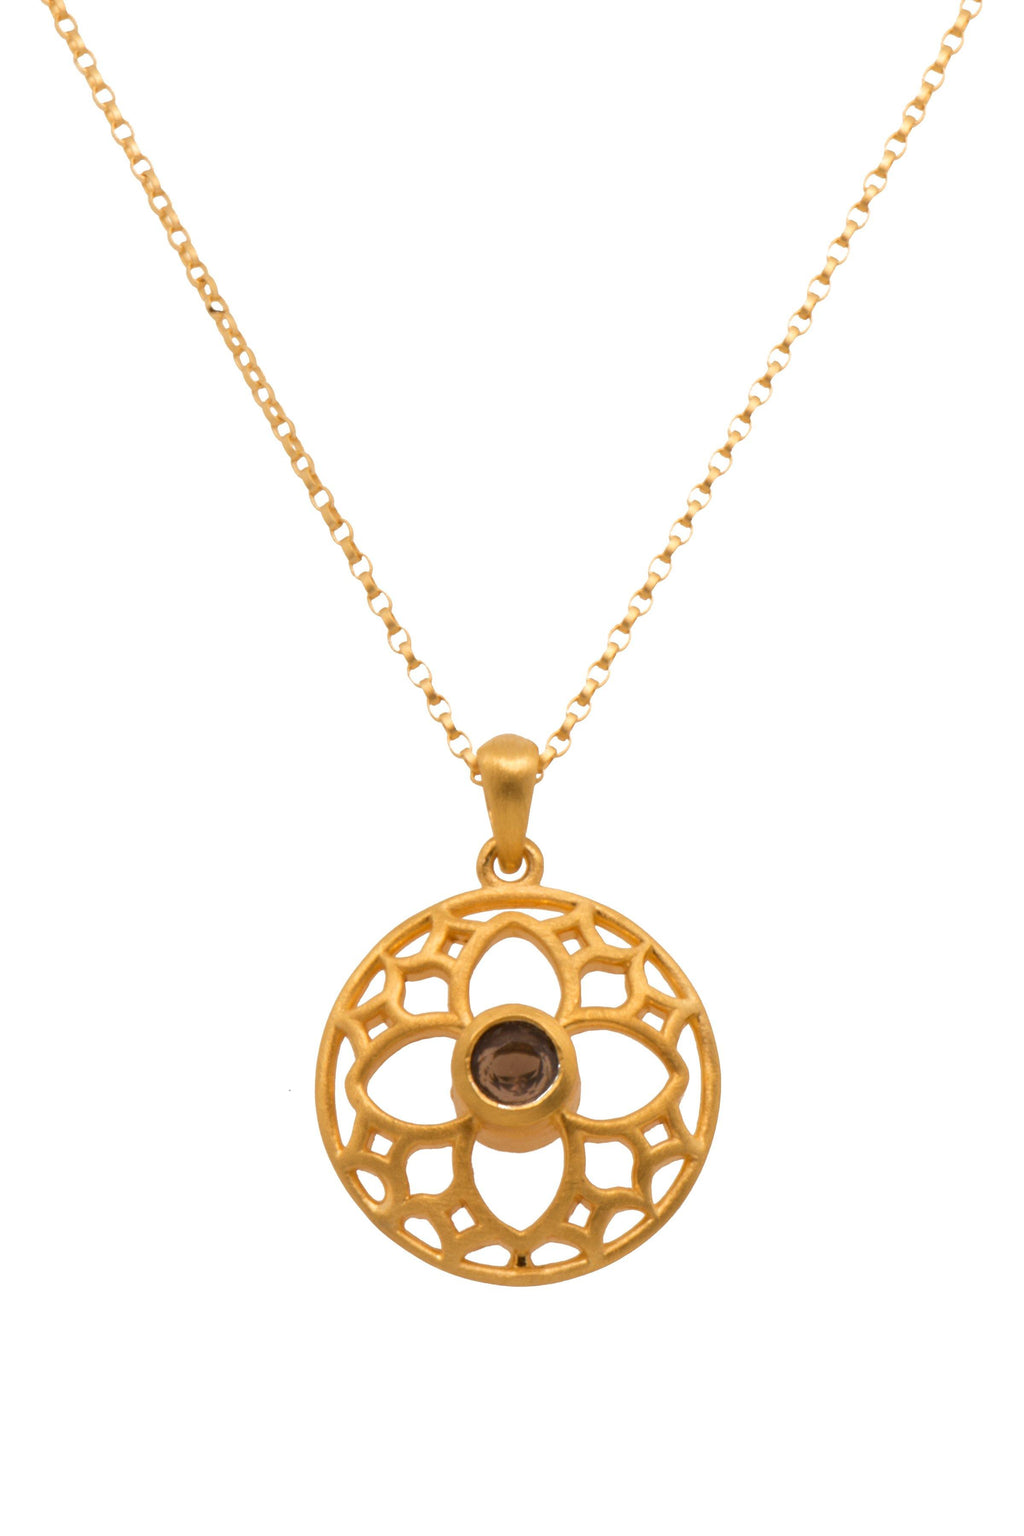 JOYFULP2SQ PENDANT- JOYFUL CIRCLE SMALL SMOKY QUARTZ 24K GOLD VERMEIL